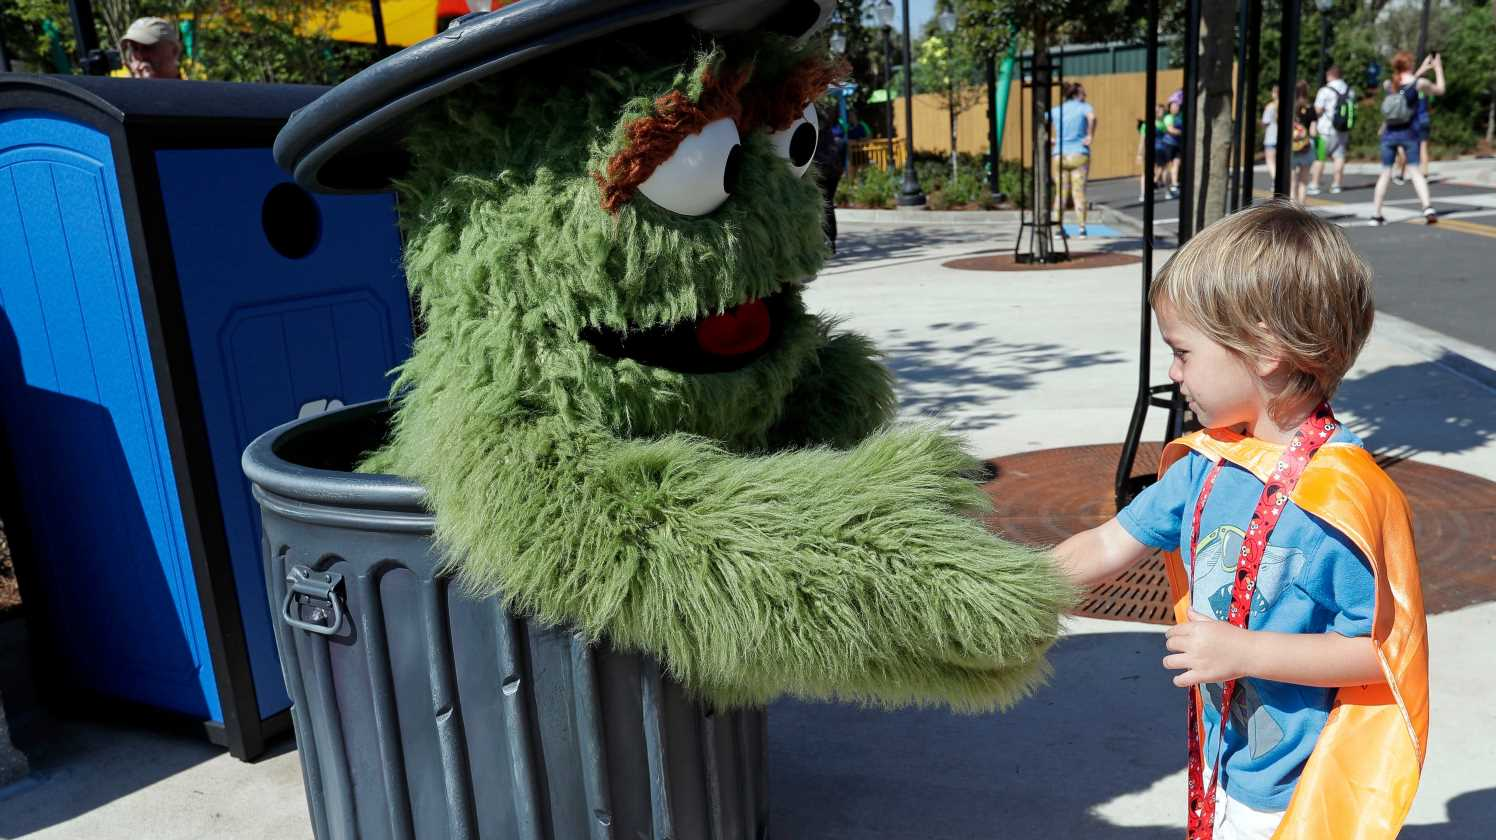 Big Bird, Elmo and more 'Sesame Street' muppets were D.C. tourists this weekend